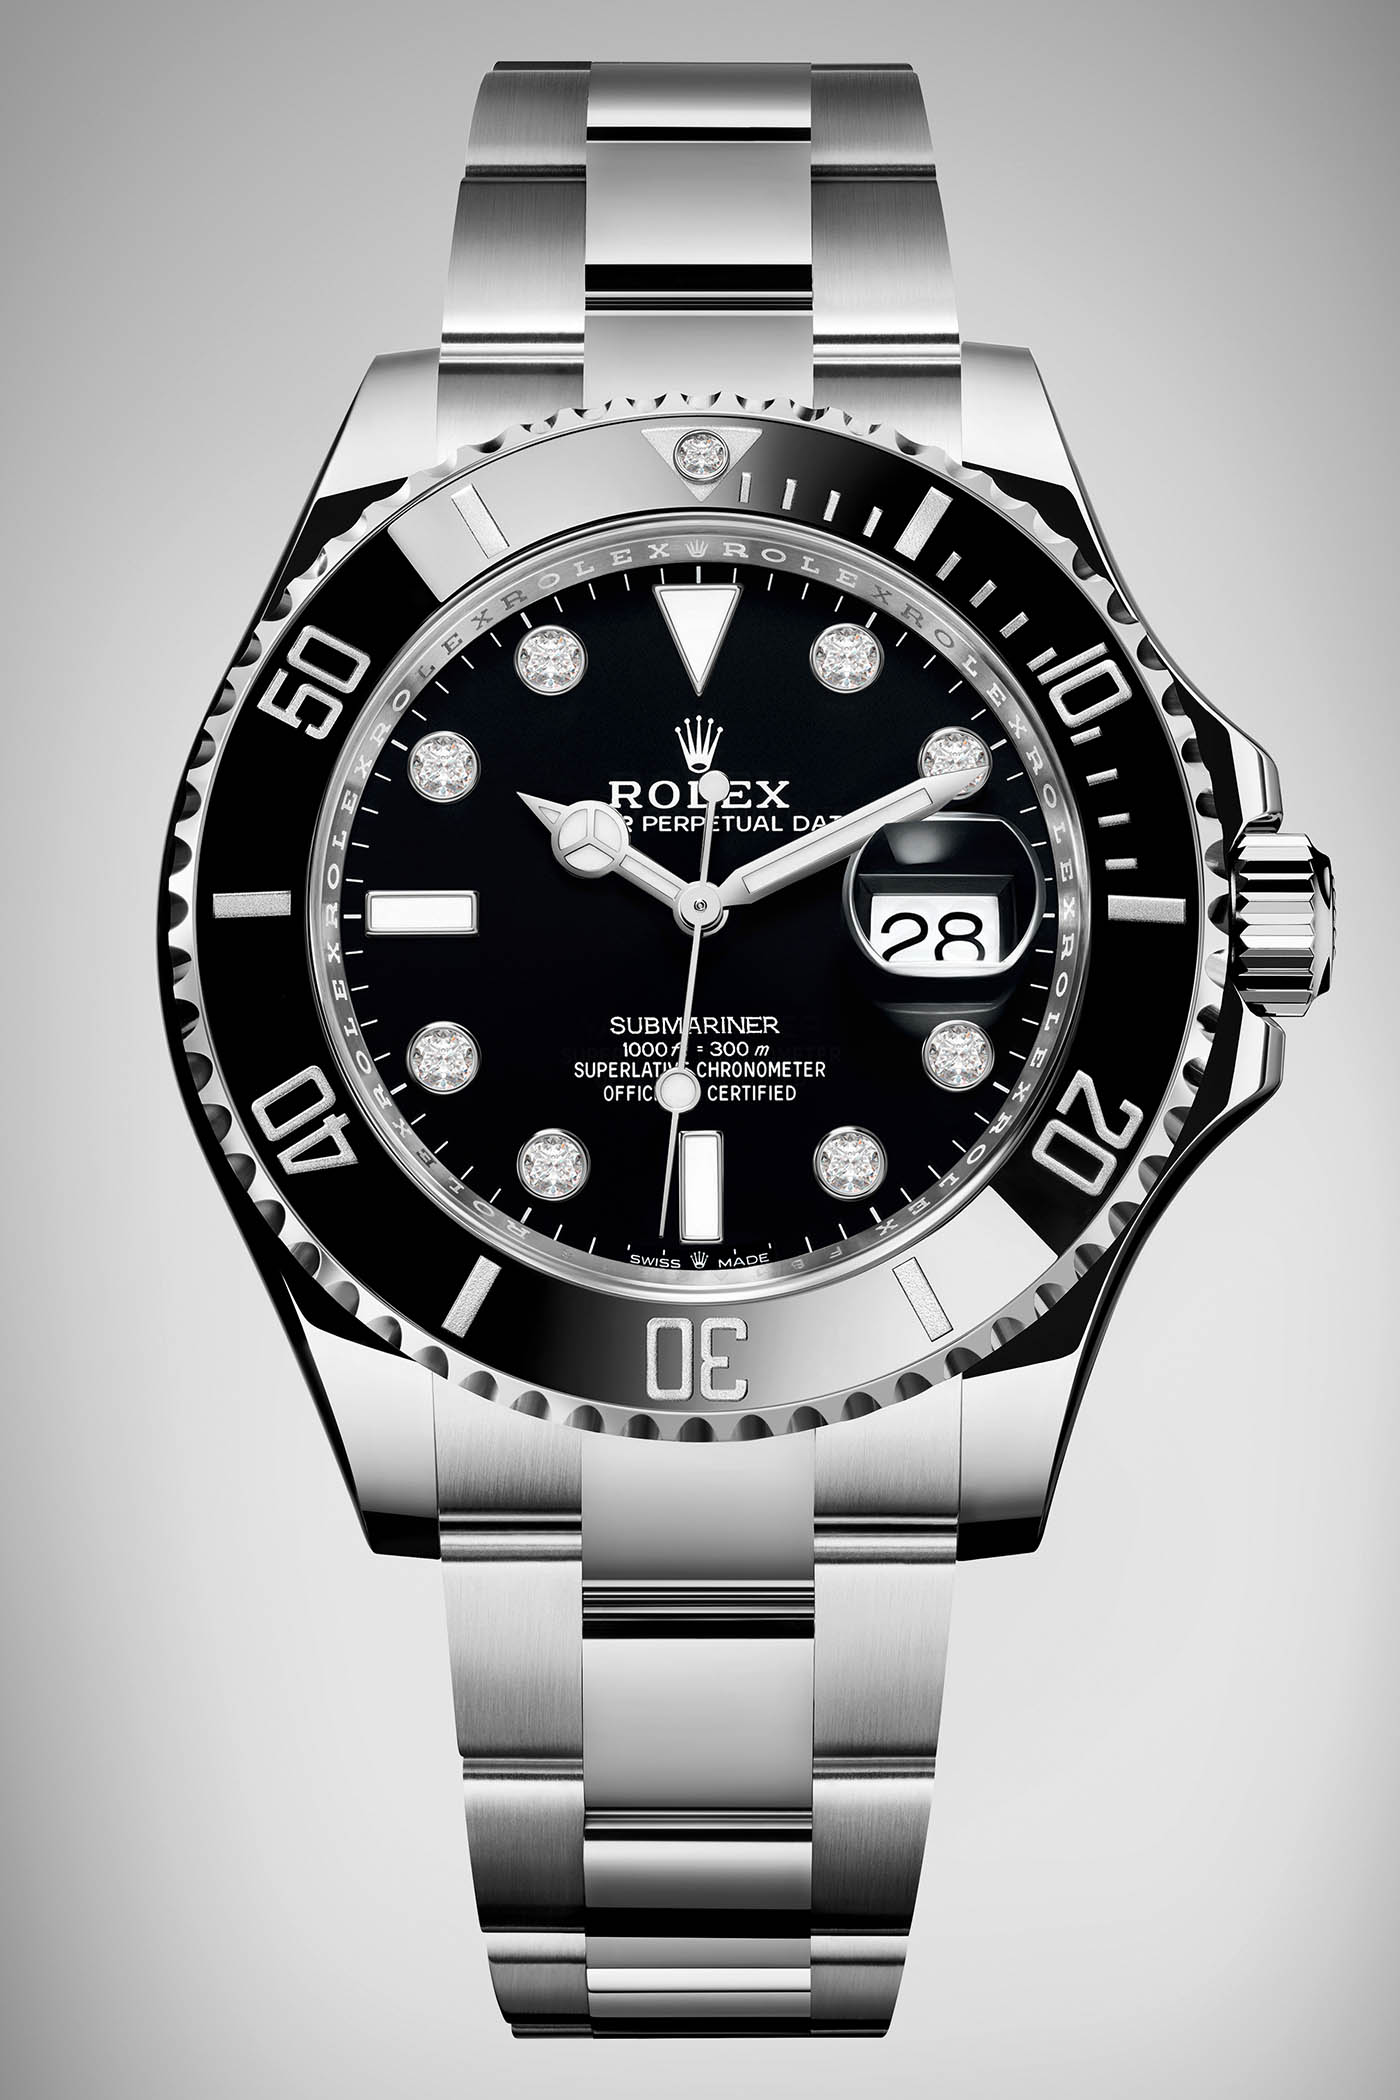 Rolex Submariner 36 Steel diamonds - Rolex Baselworld 2019 - Rolex 2019  Predictions 1de5f70b9